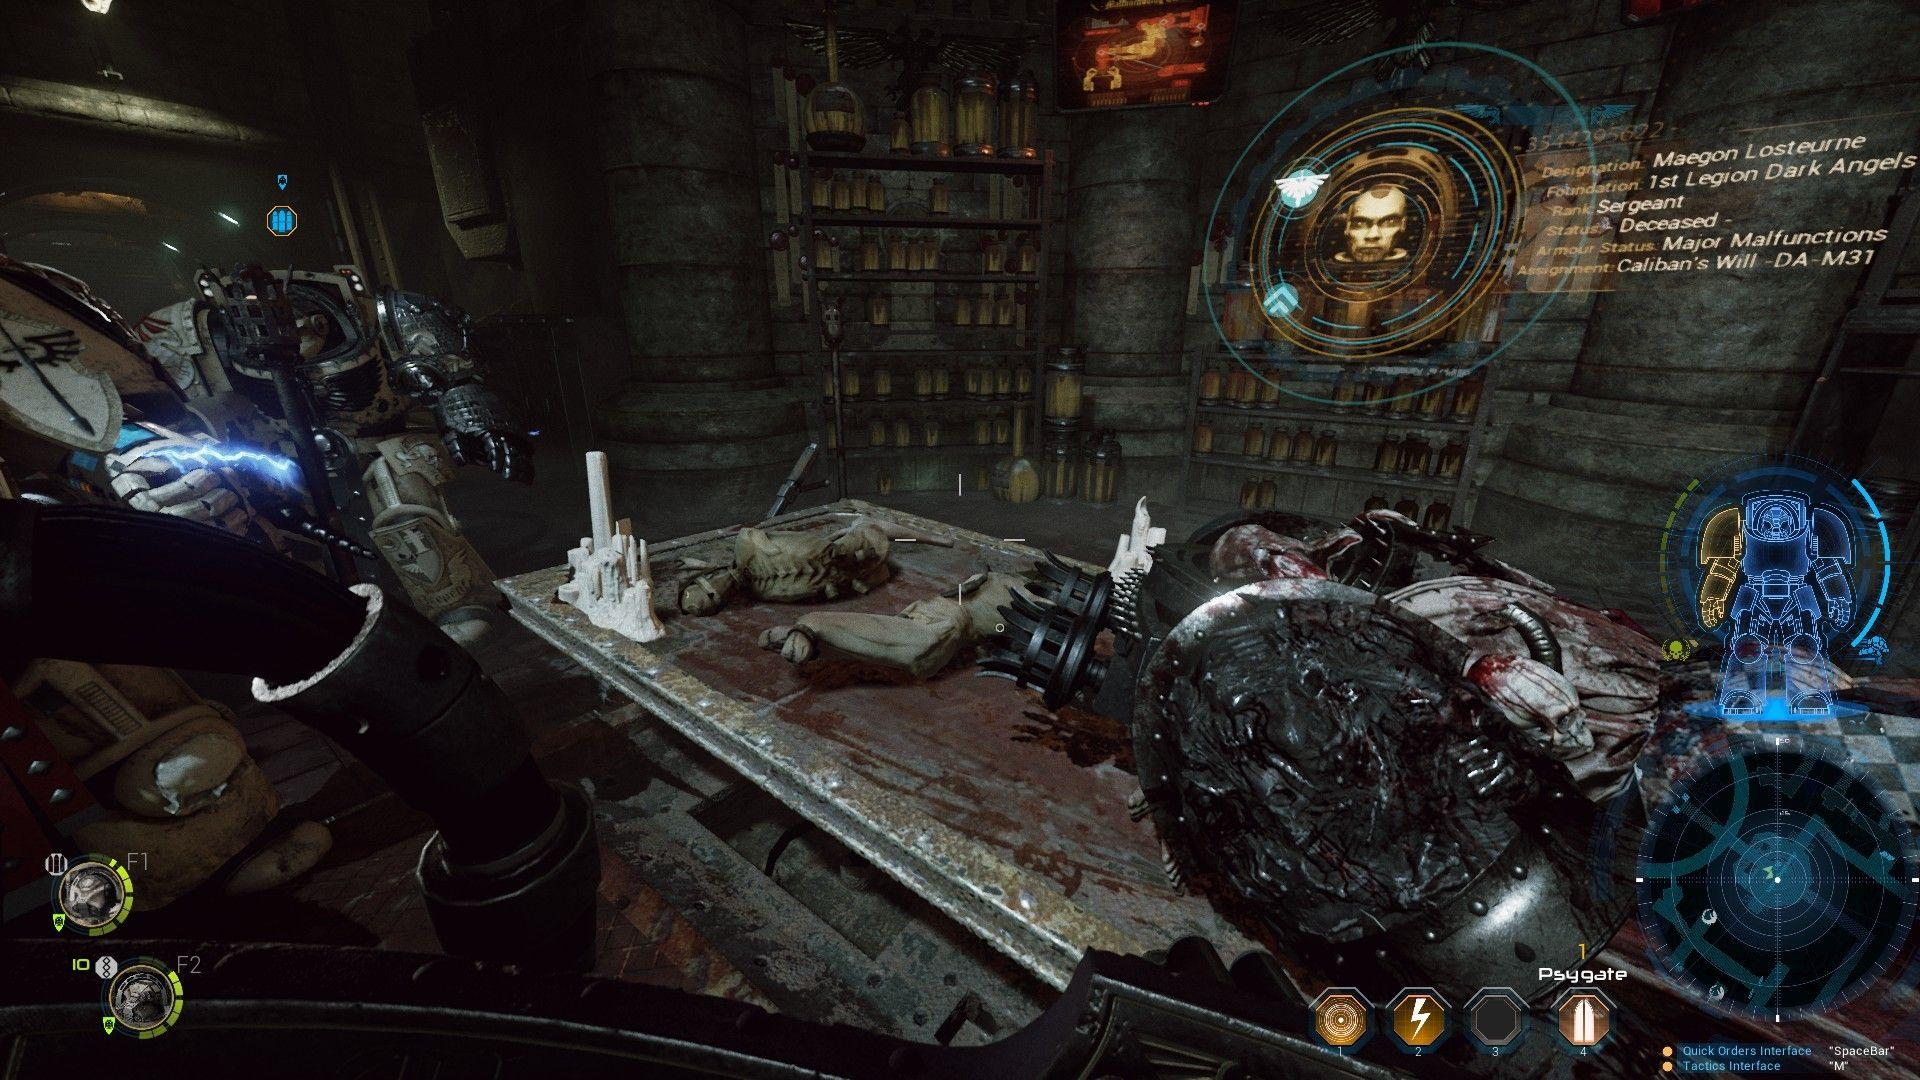 Space Hulk: Deathwing - Enhanced Edition Wallpapers - Wallpaper Cave